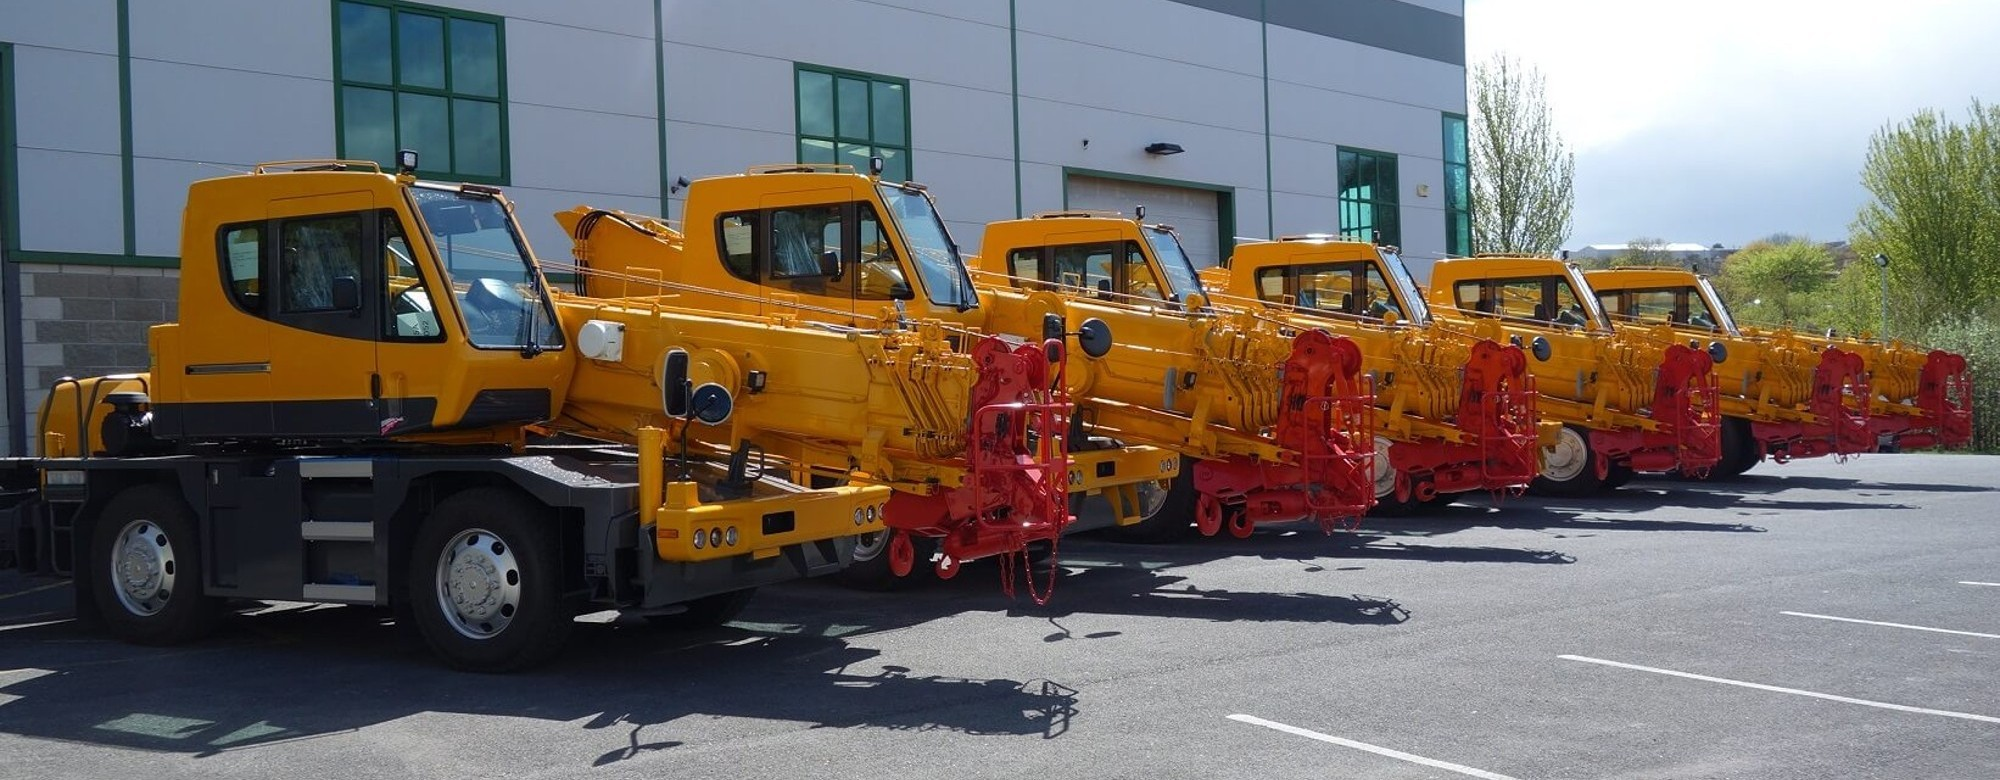 Over 100 years manufacturing cranes